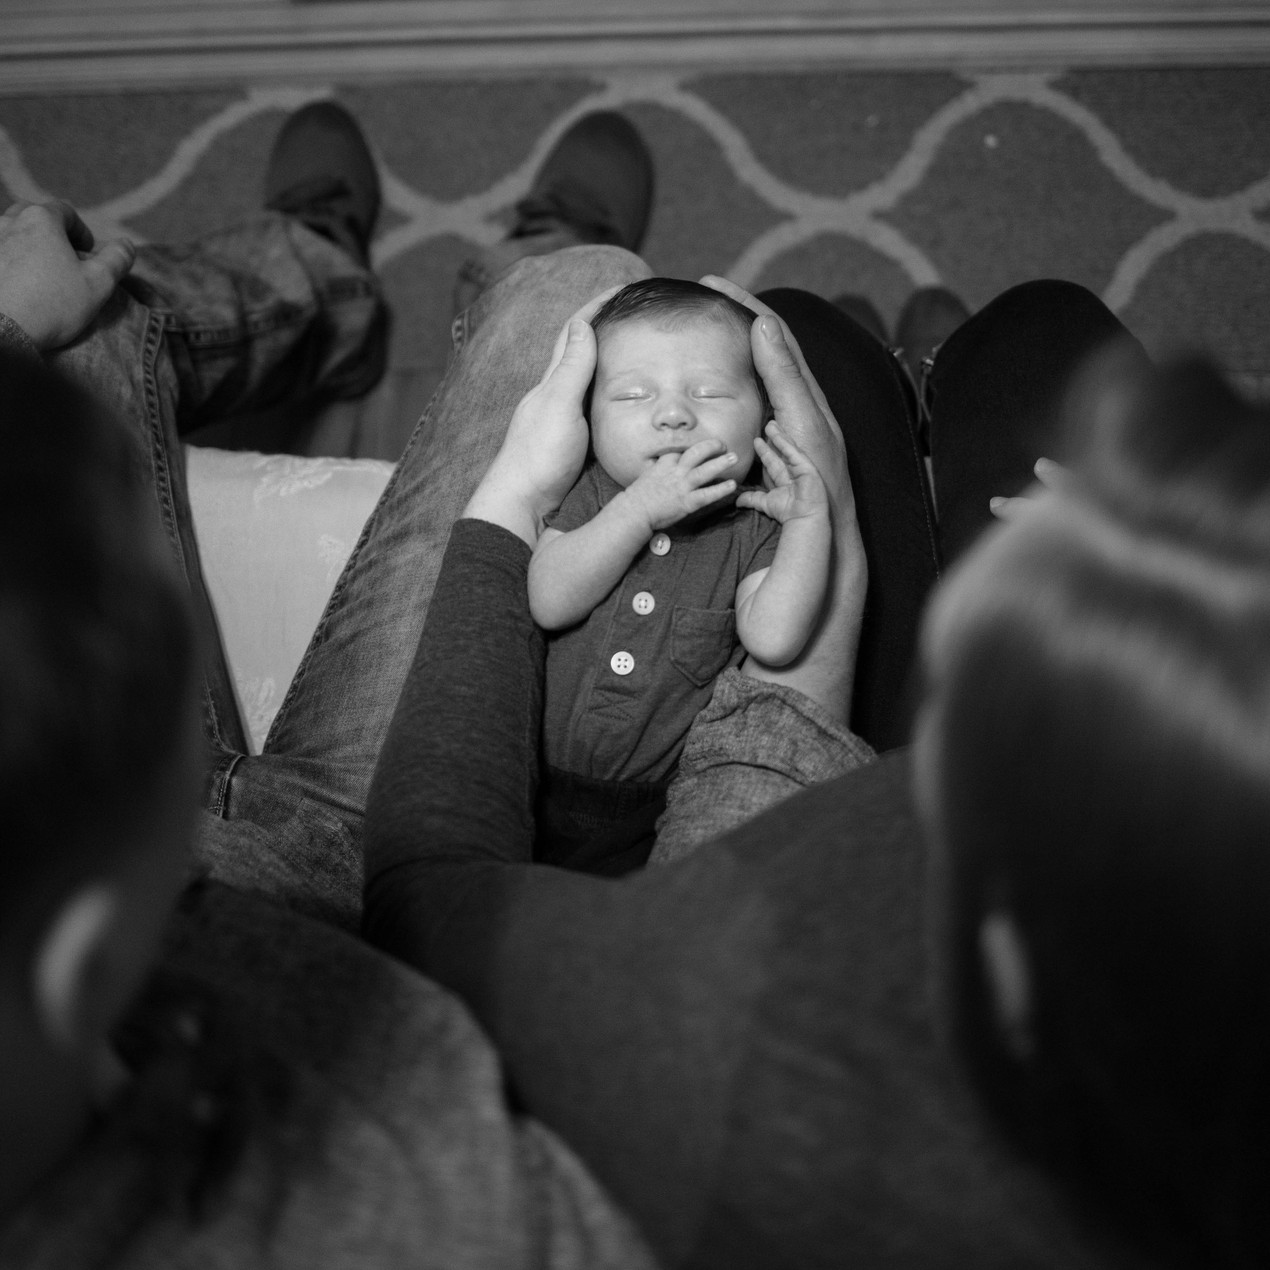 Black and White newborn lifestyle photography session